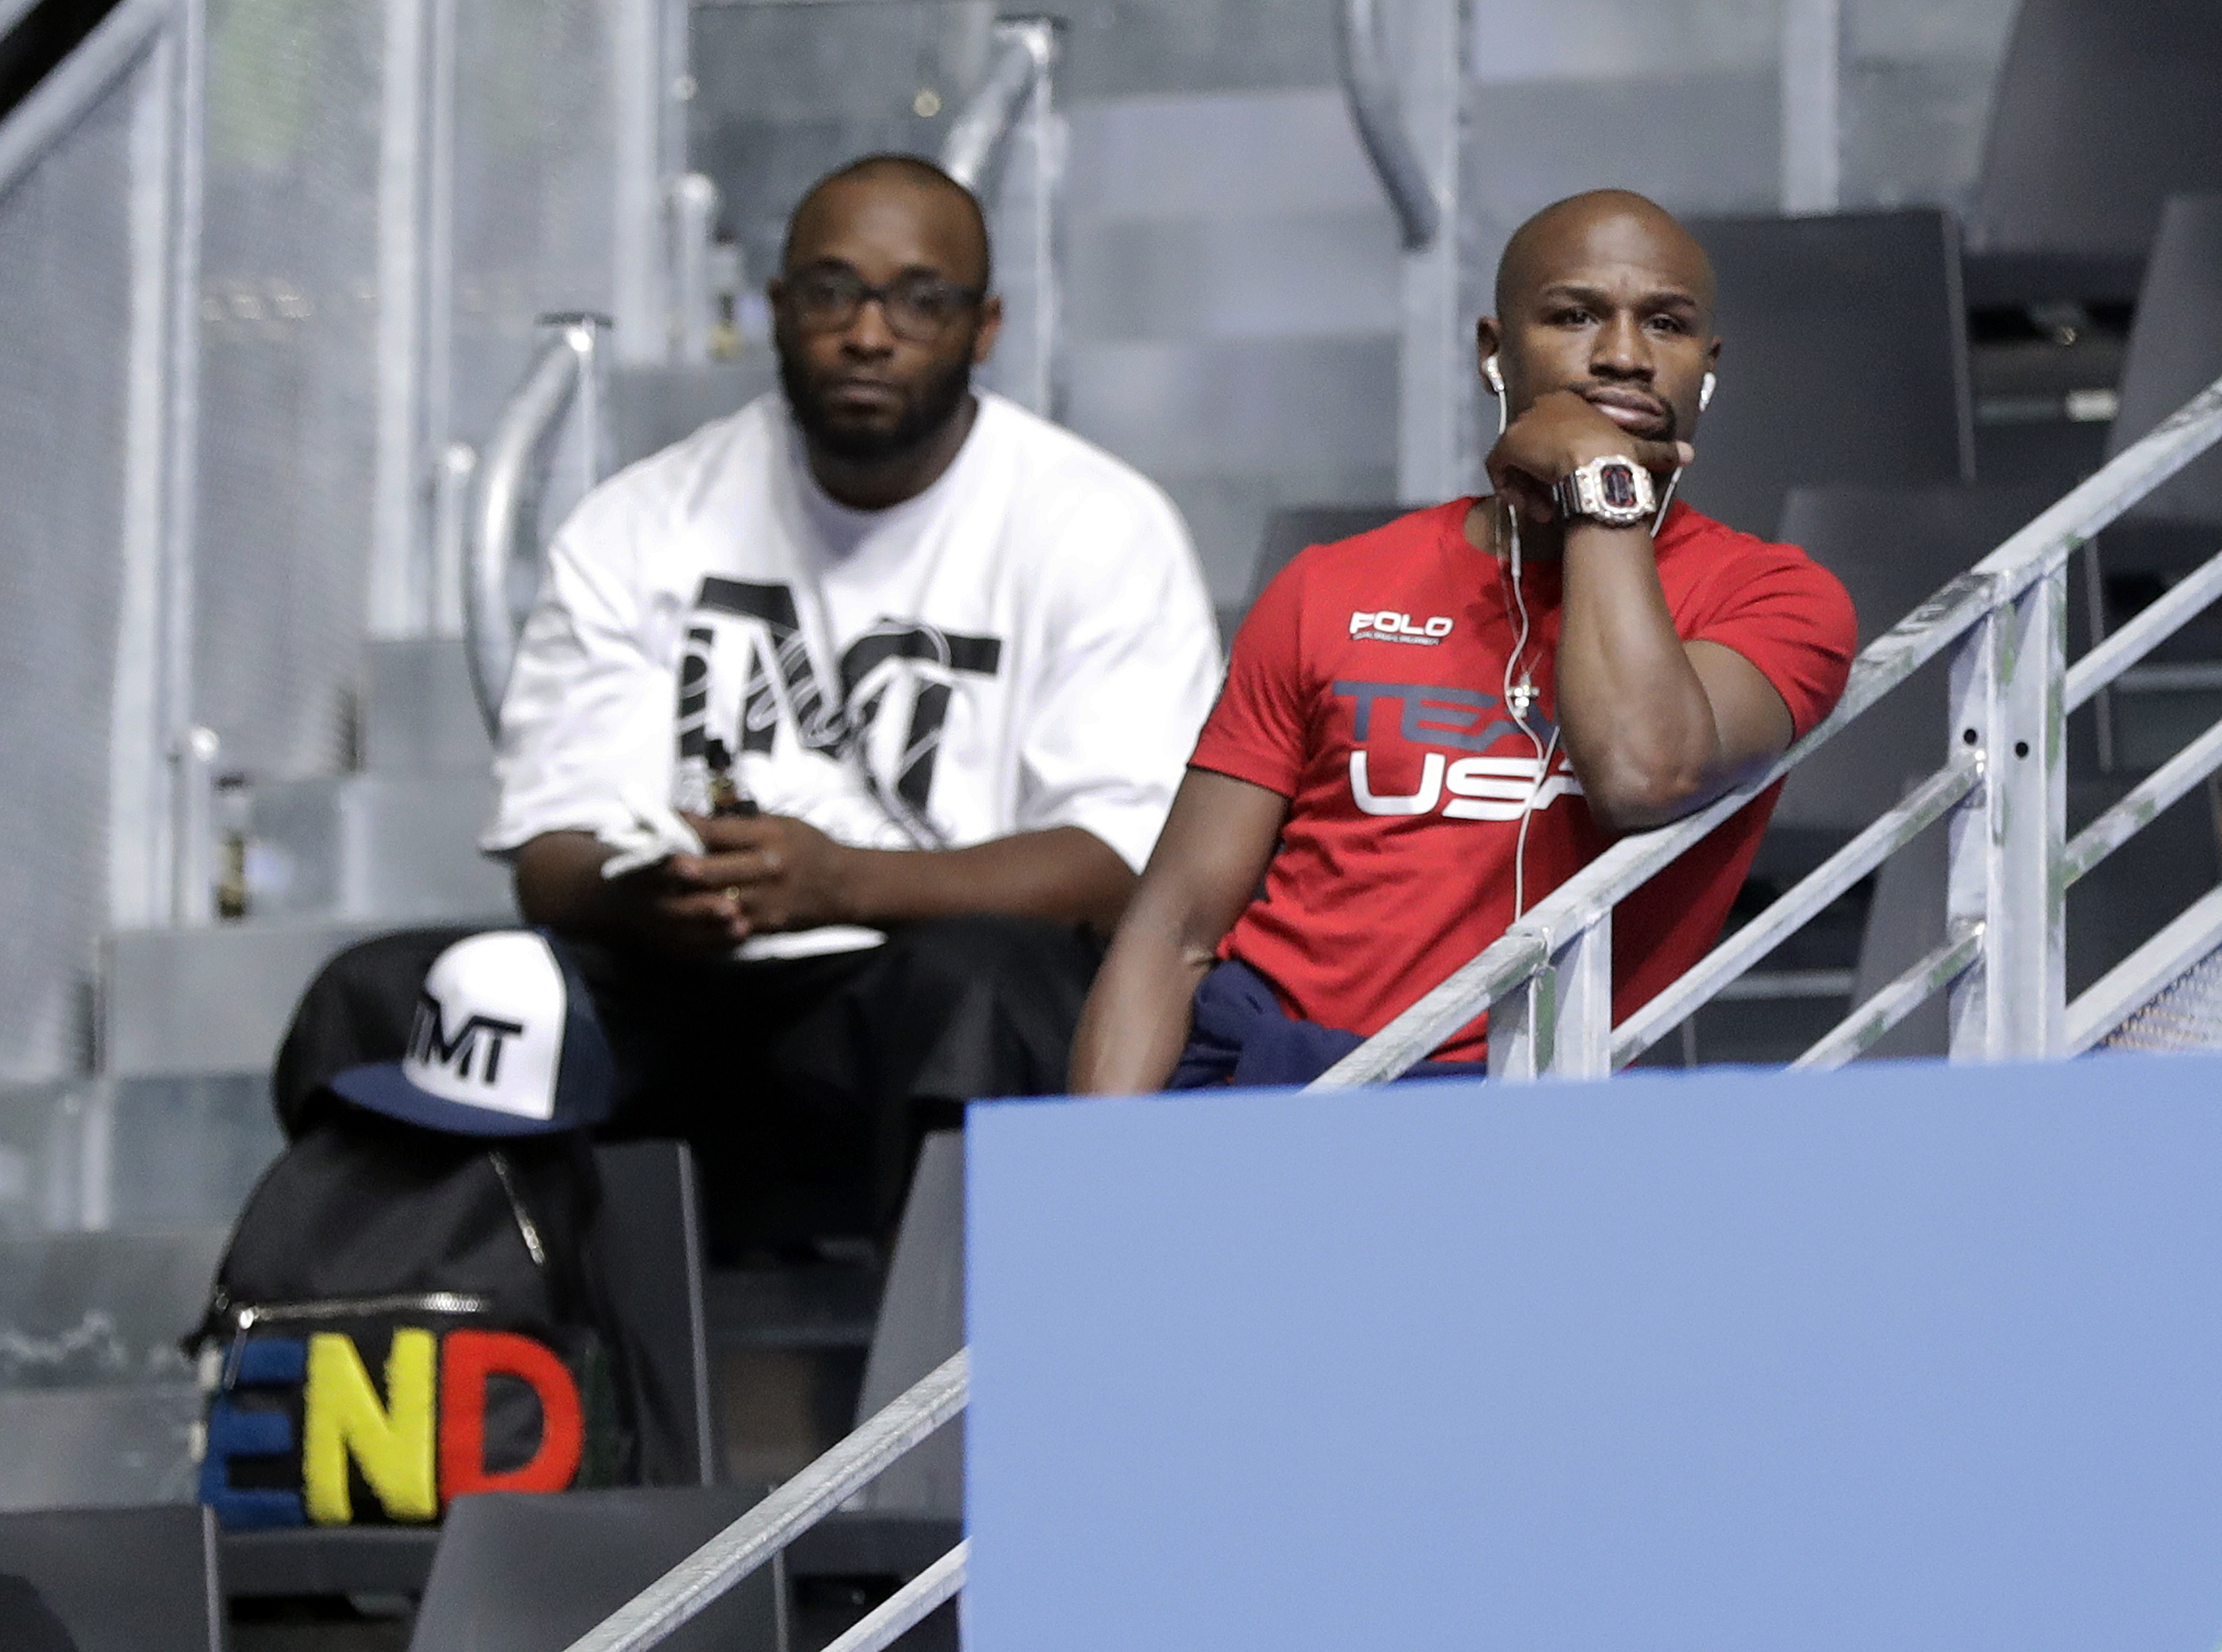 Boxer Floyd Mayweather Jr., right, watches boxing matches at Riocentro during the 2016 Summer Olympics in Rio de Janeiro, Brazil, Saturday, Aug. 13, 2016. (AP Photo/Frank Franklin II)